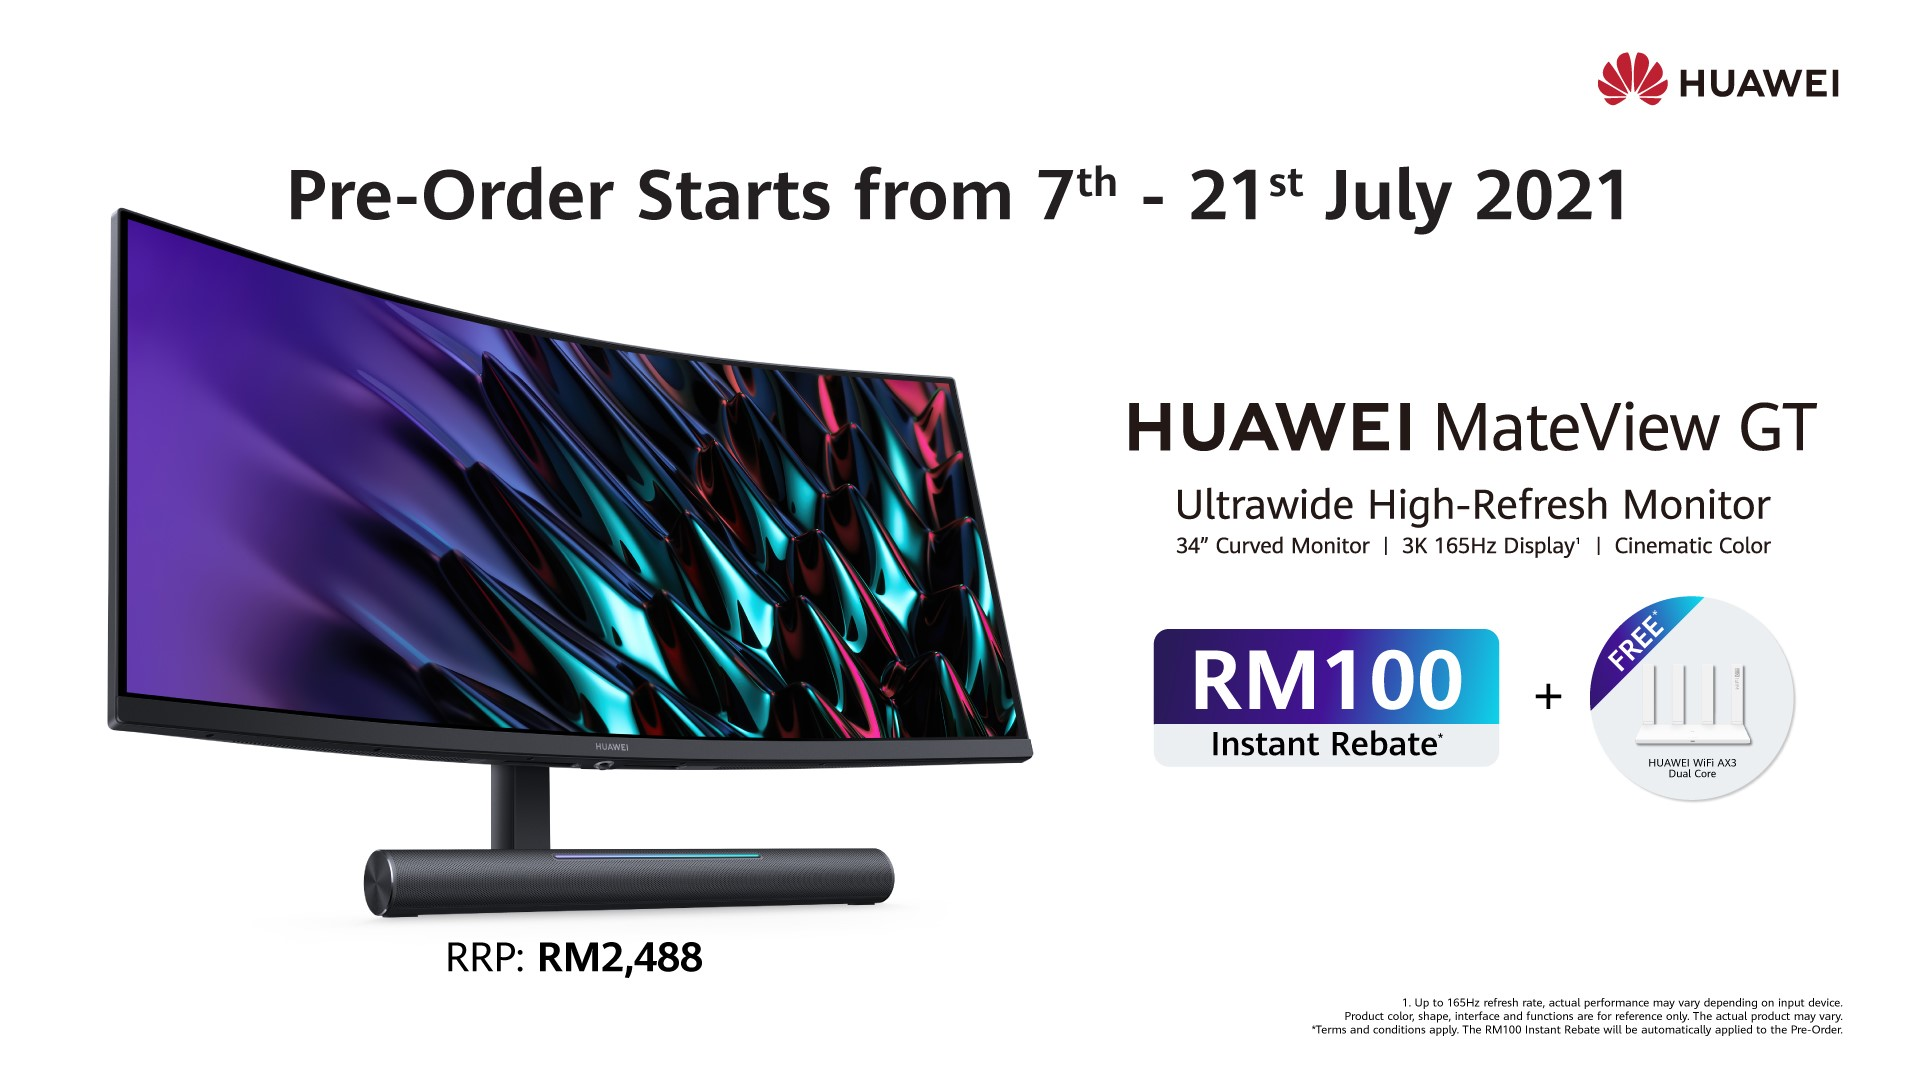 Pre-Order The HUAWEI MateView and MateView GT Now for an instant rebate of RM 100 and freebie worth RM 199 23